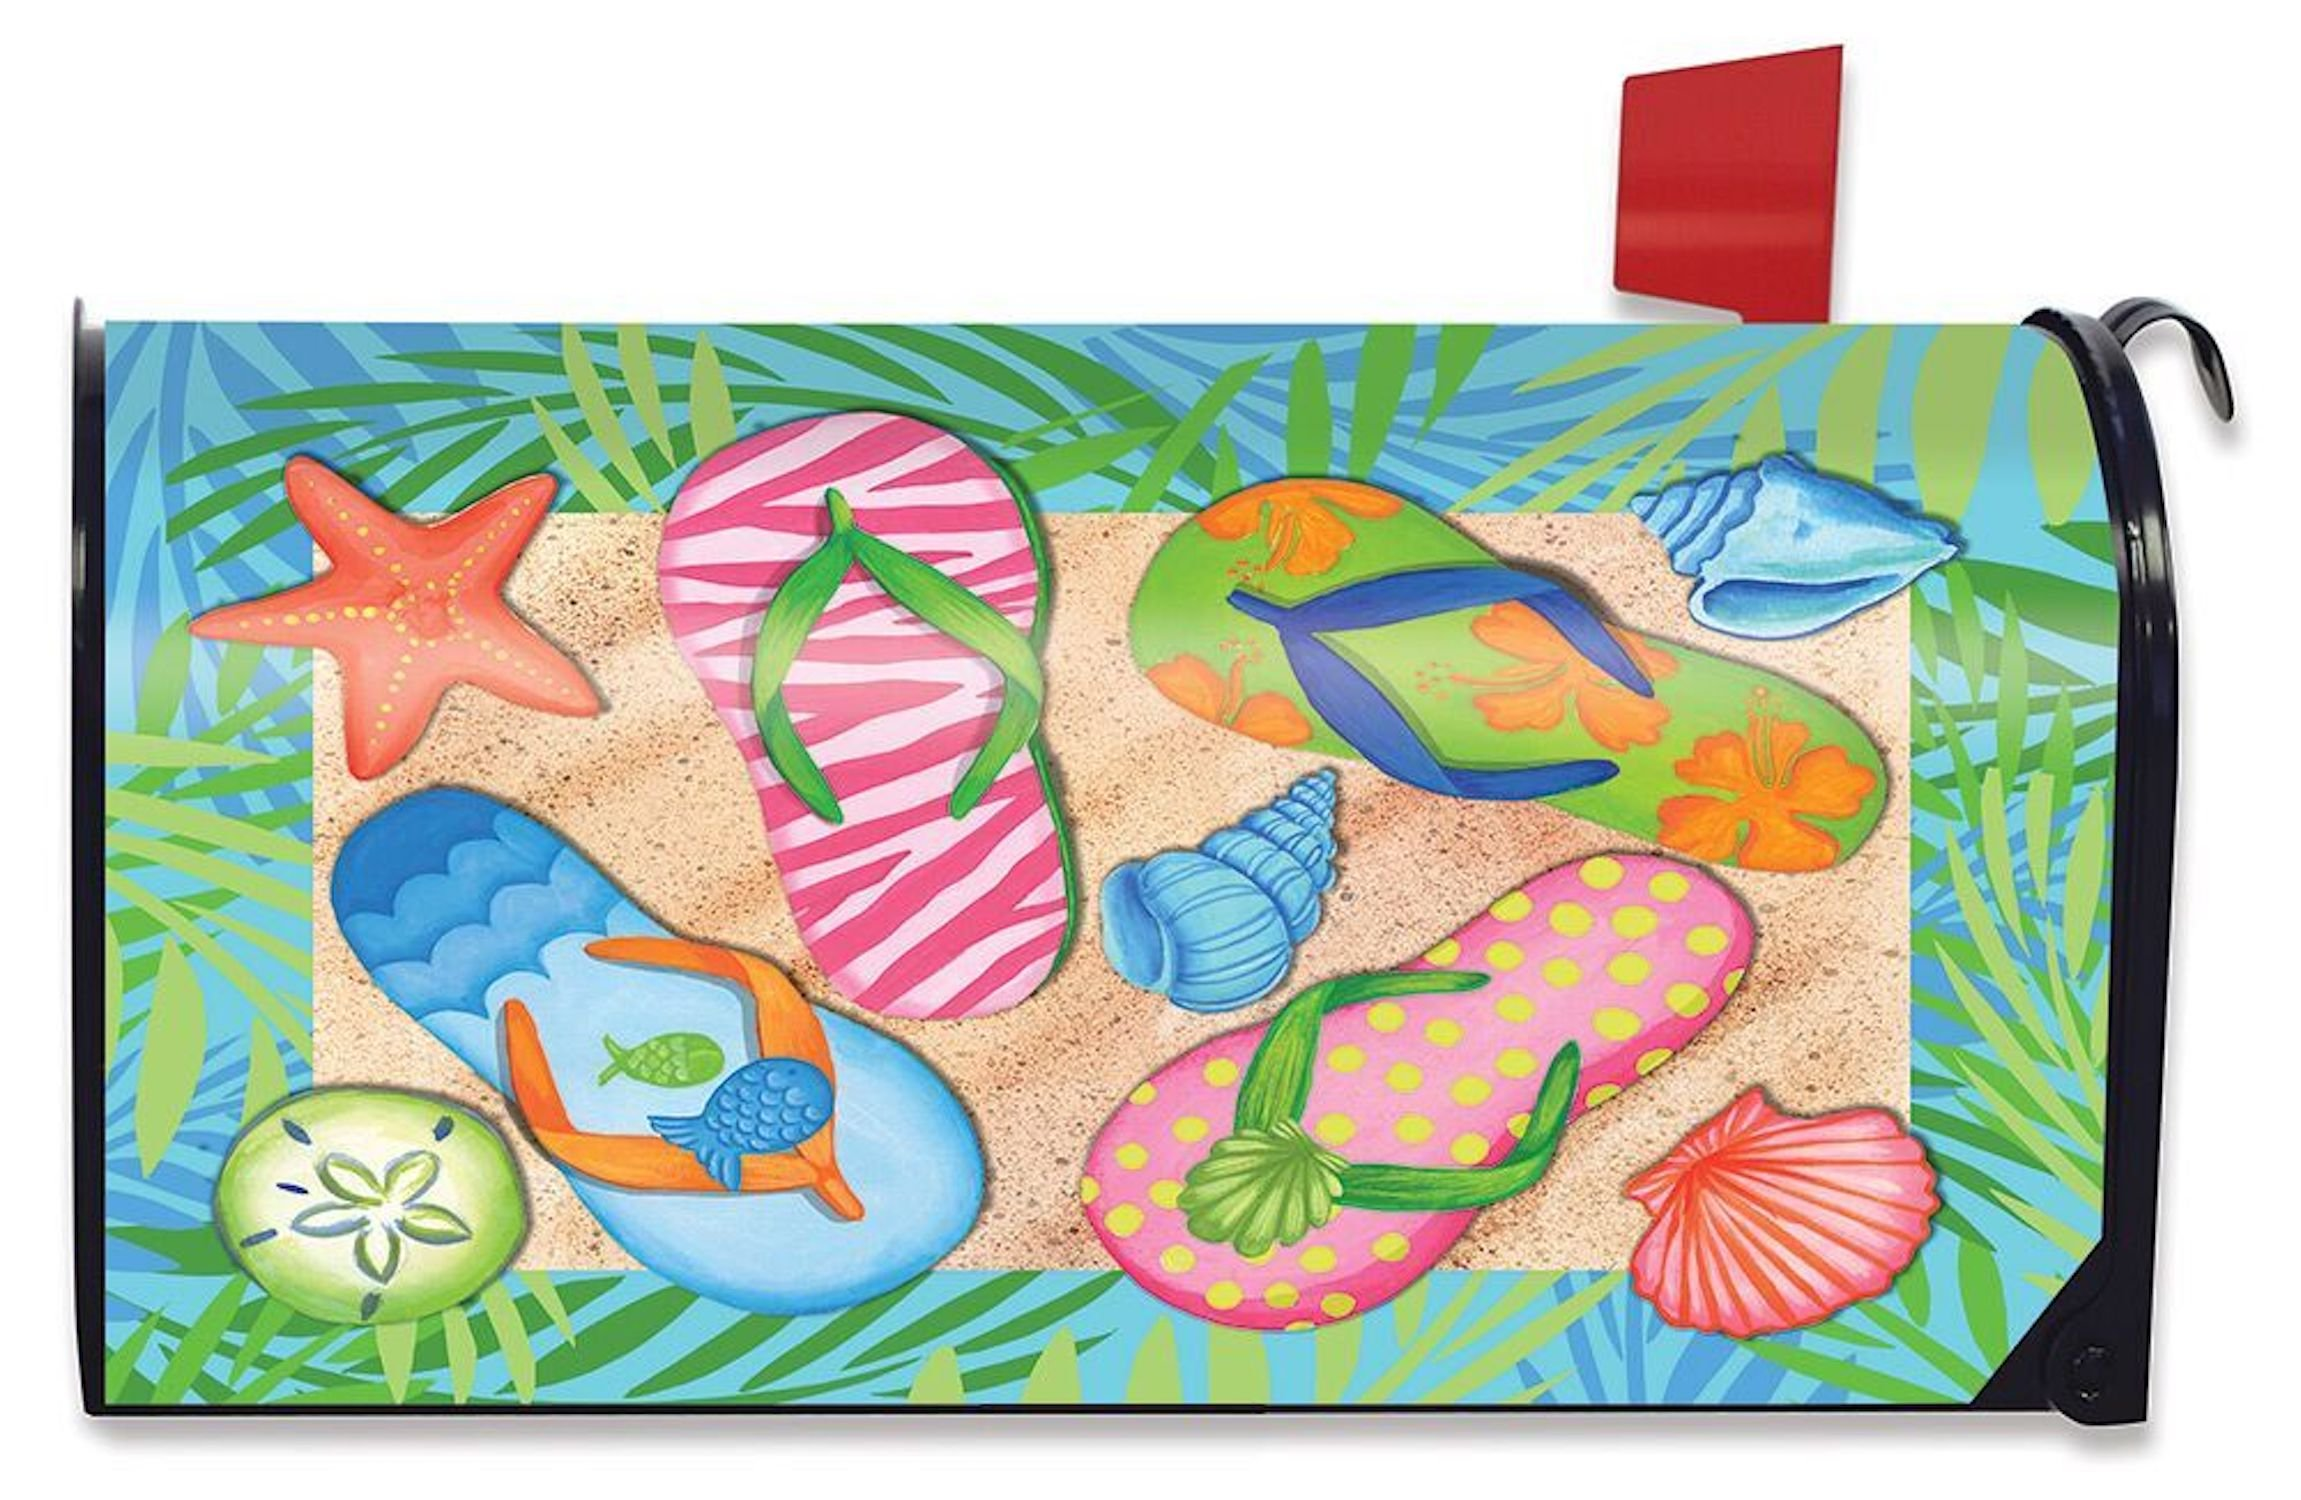 Briarwood Lane Tropical Flip Flops Summer Mailbox Cover Palm Trees Sand Shells